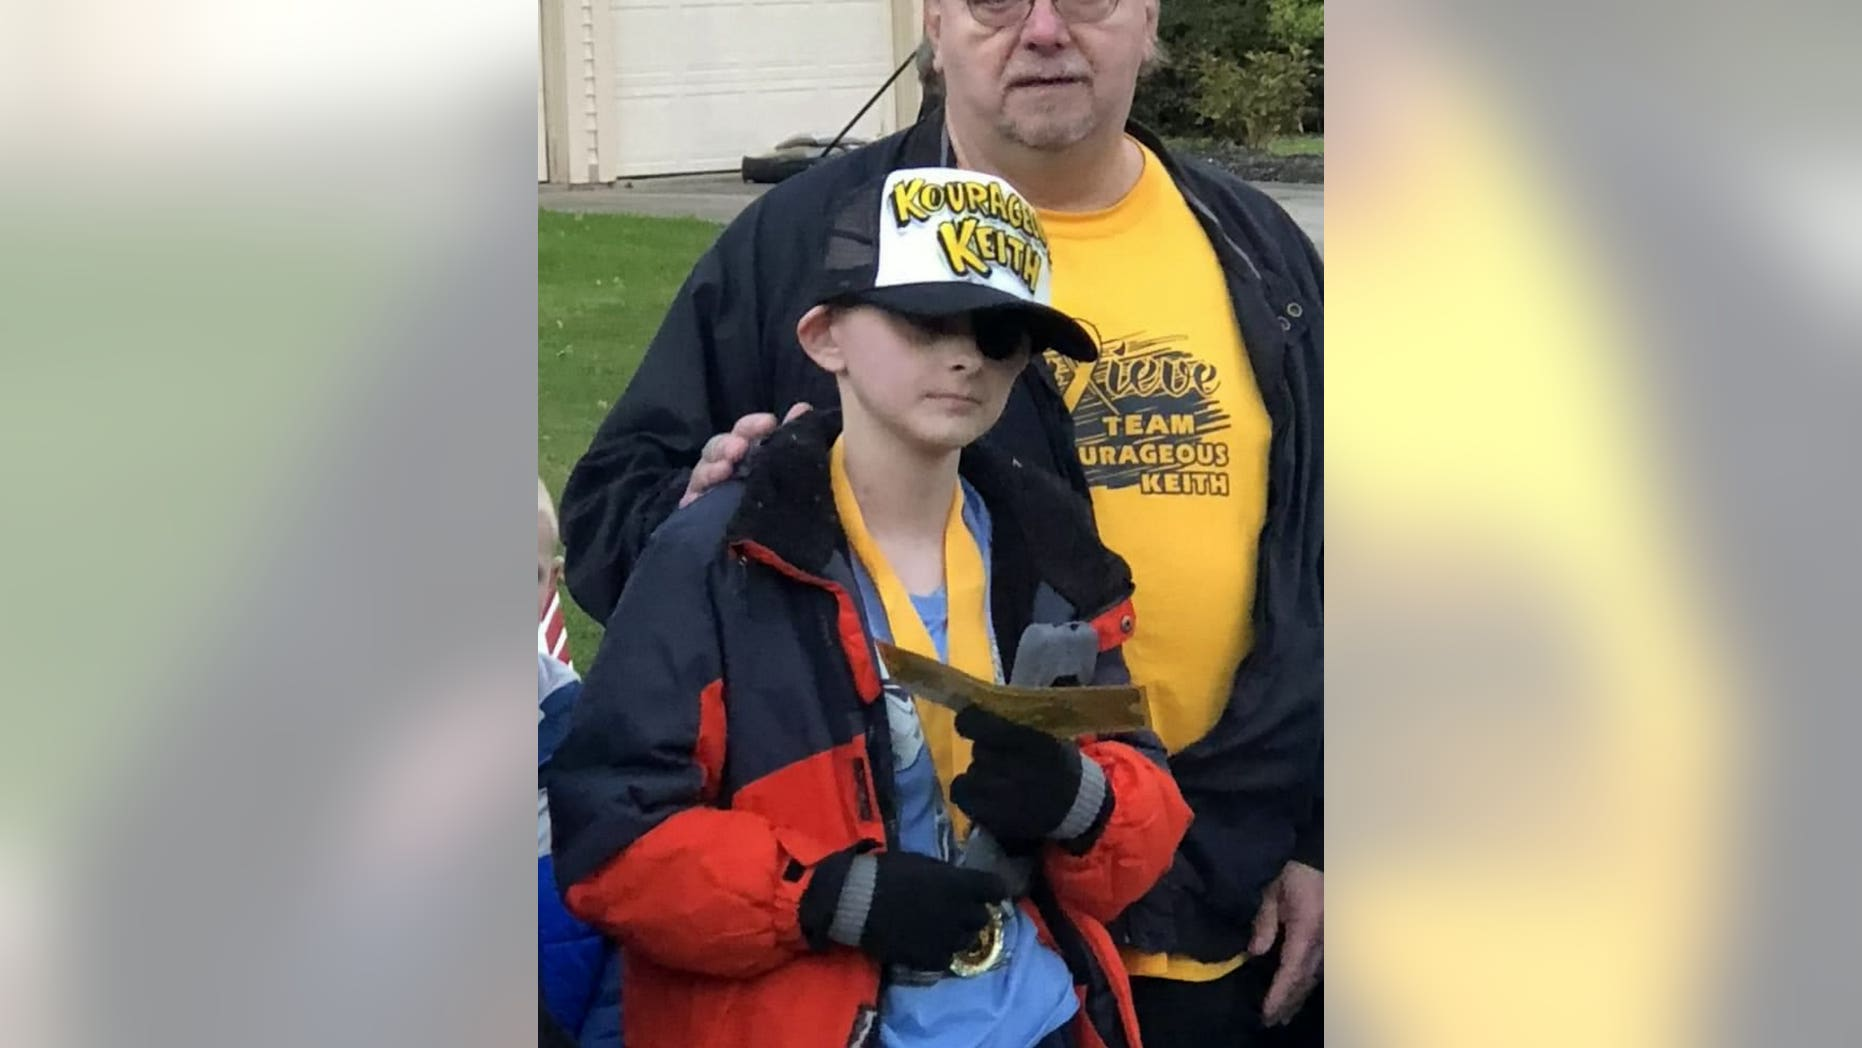 Keith Burkett, 12, holds his Golden Ticket for the Polar Express, which was part of his town's early Christmas celebration held in his honor.